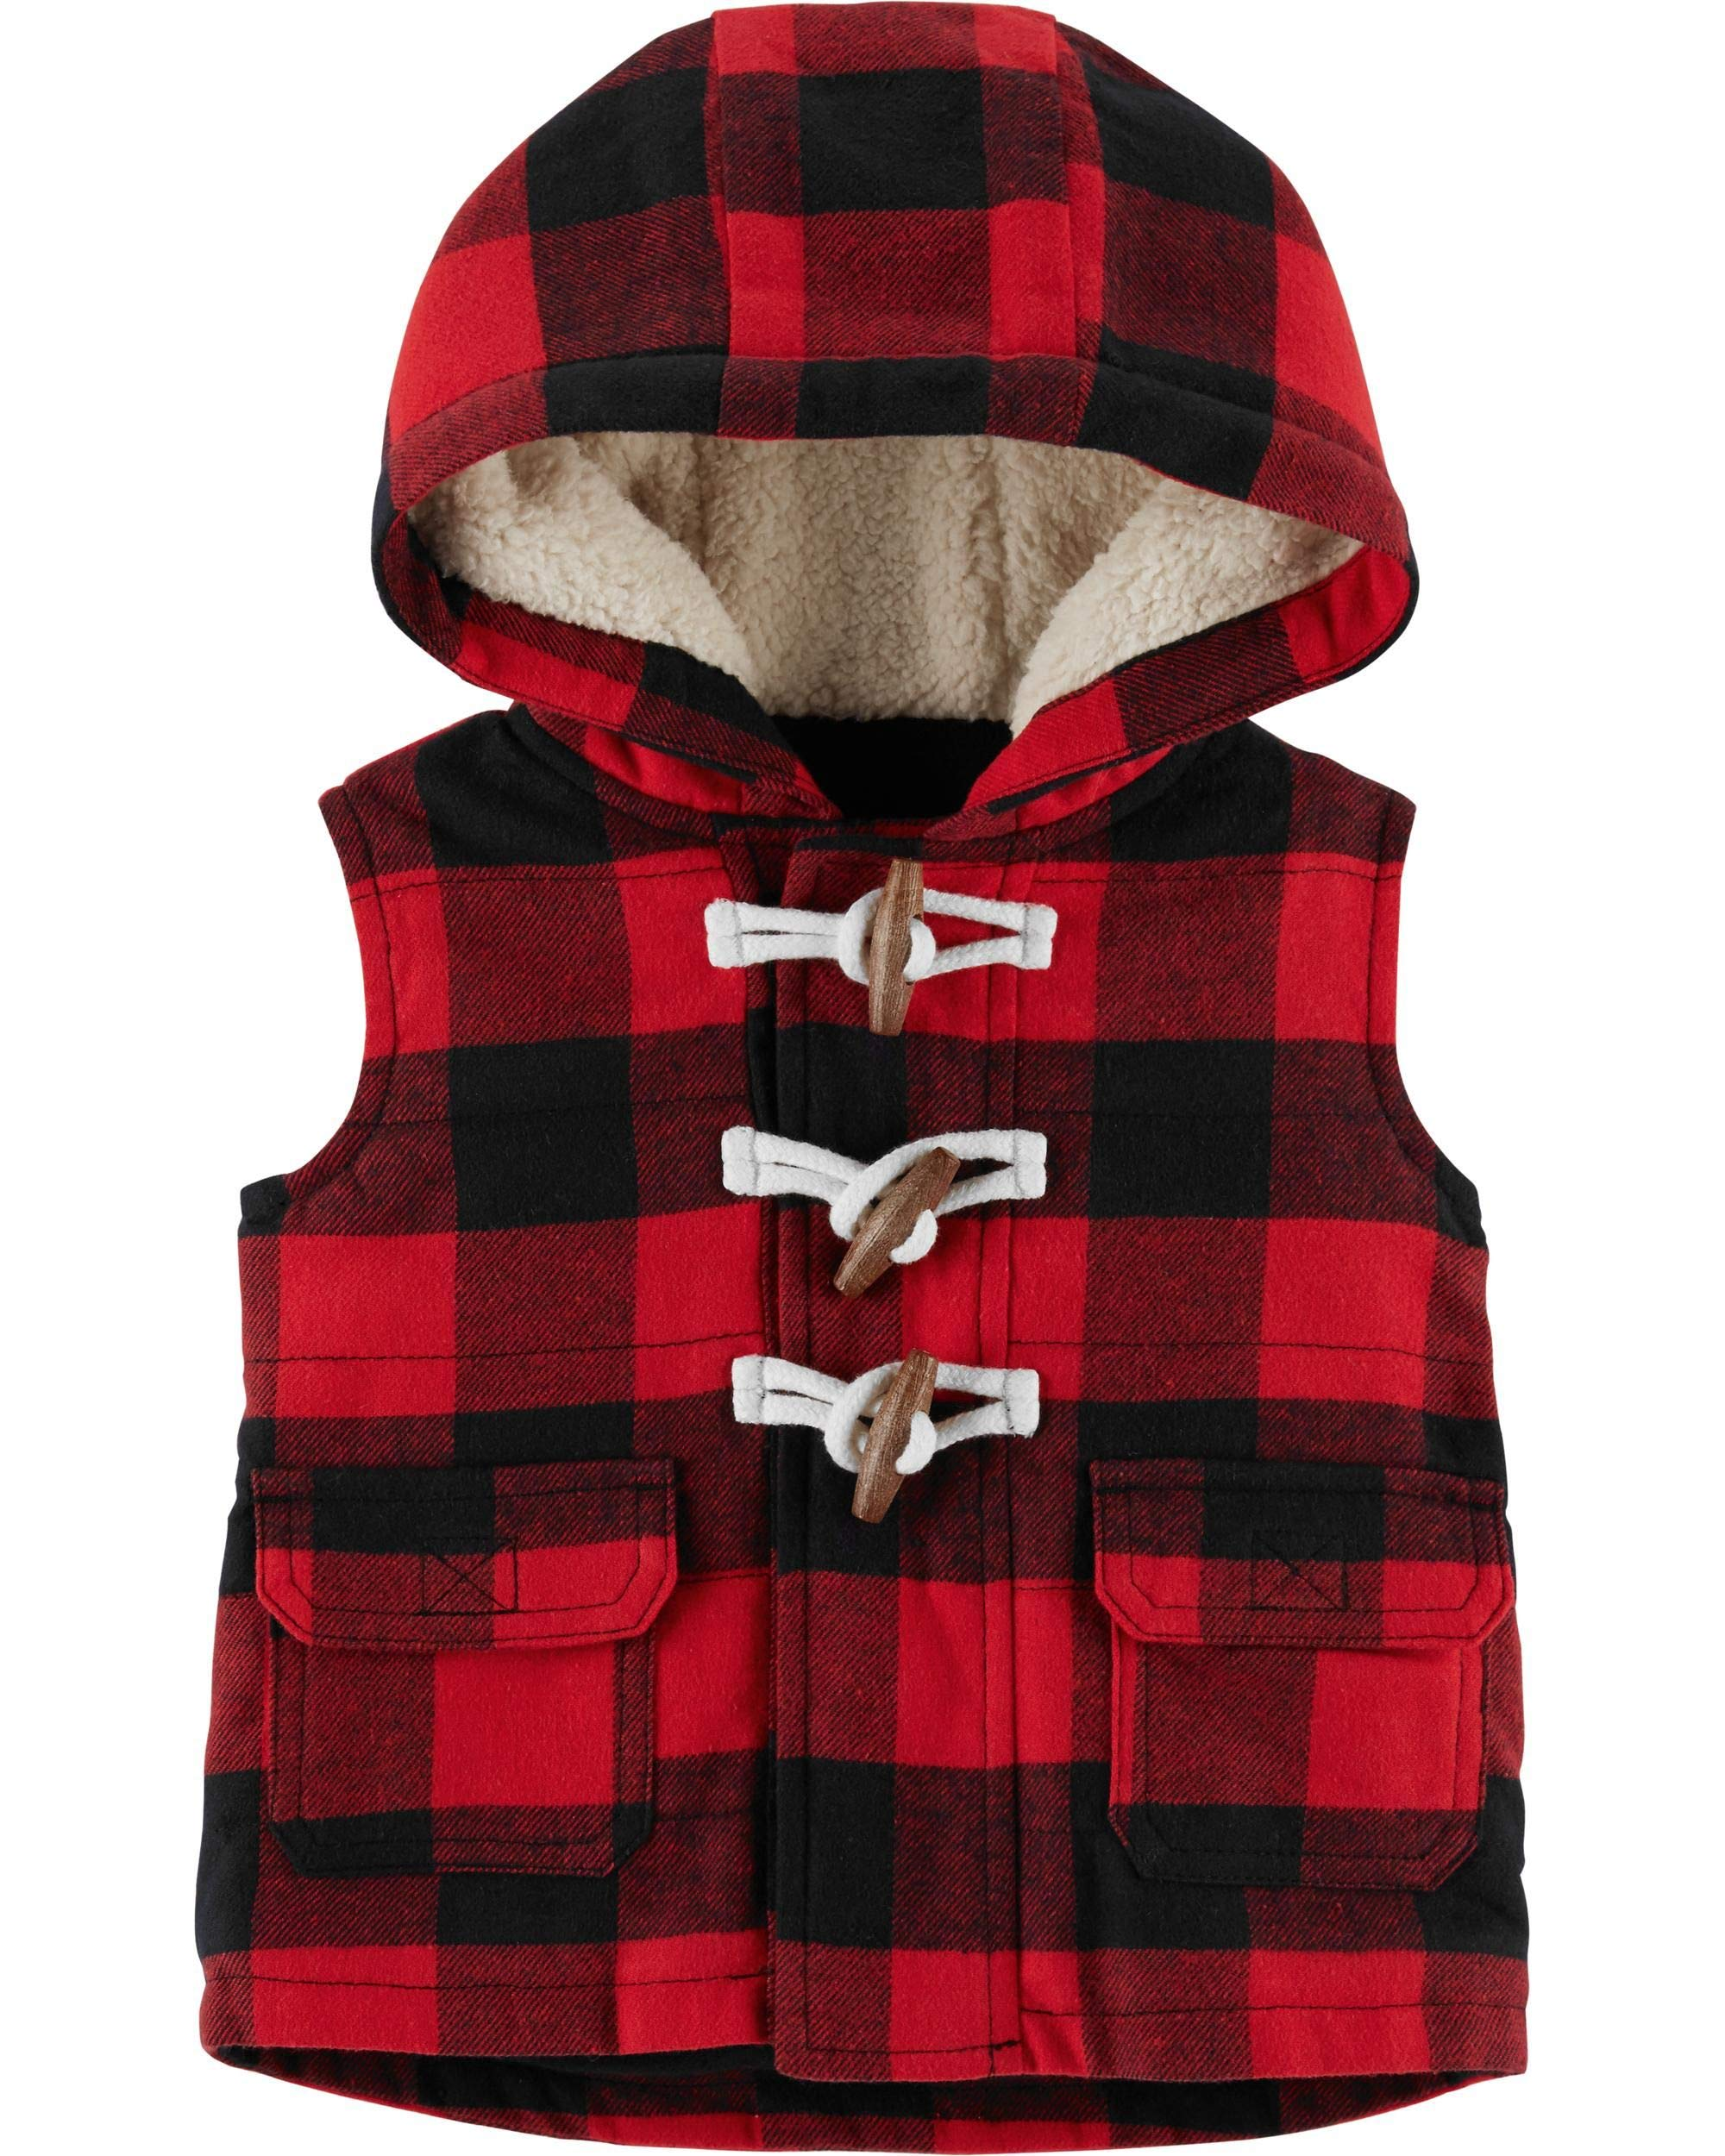 Carter's Baby Boys Hooded Buffalo-Check Toggle Vest - Red/Black (12 Months) by Carter's